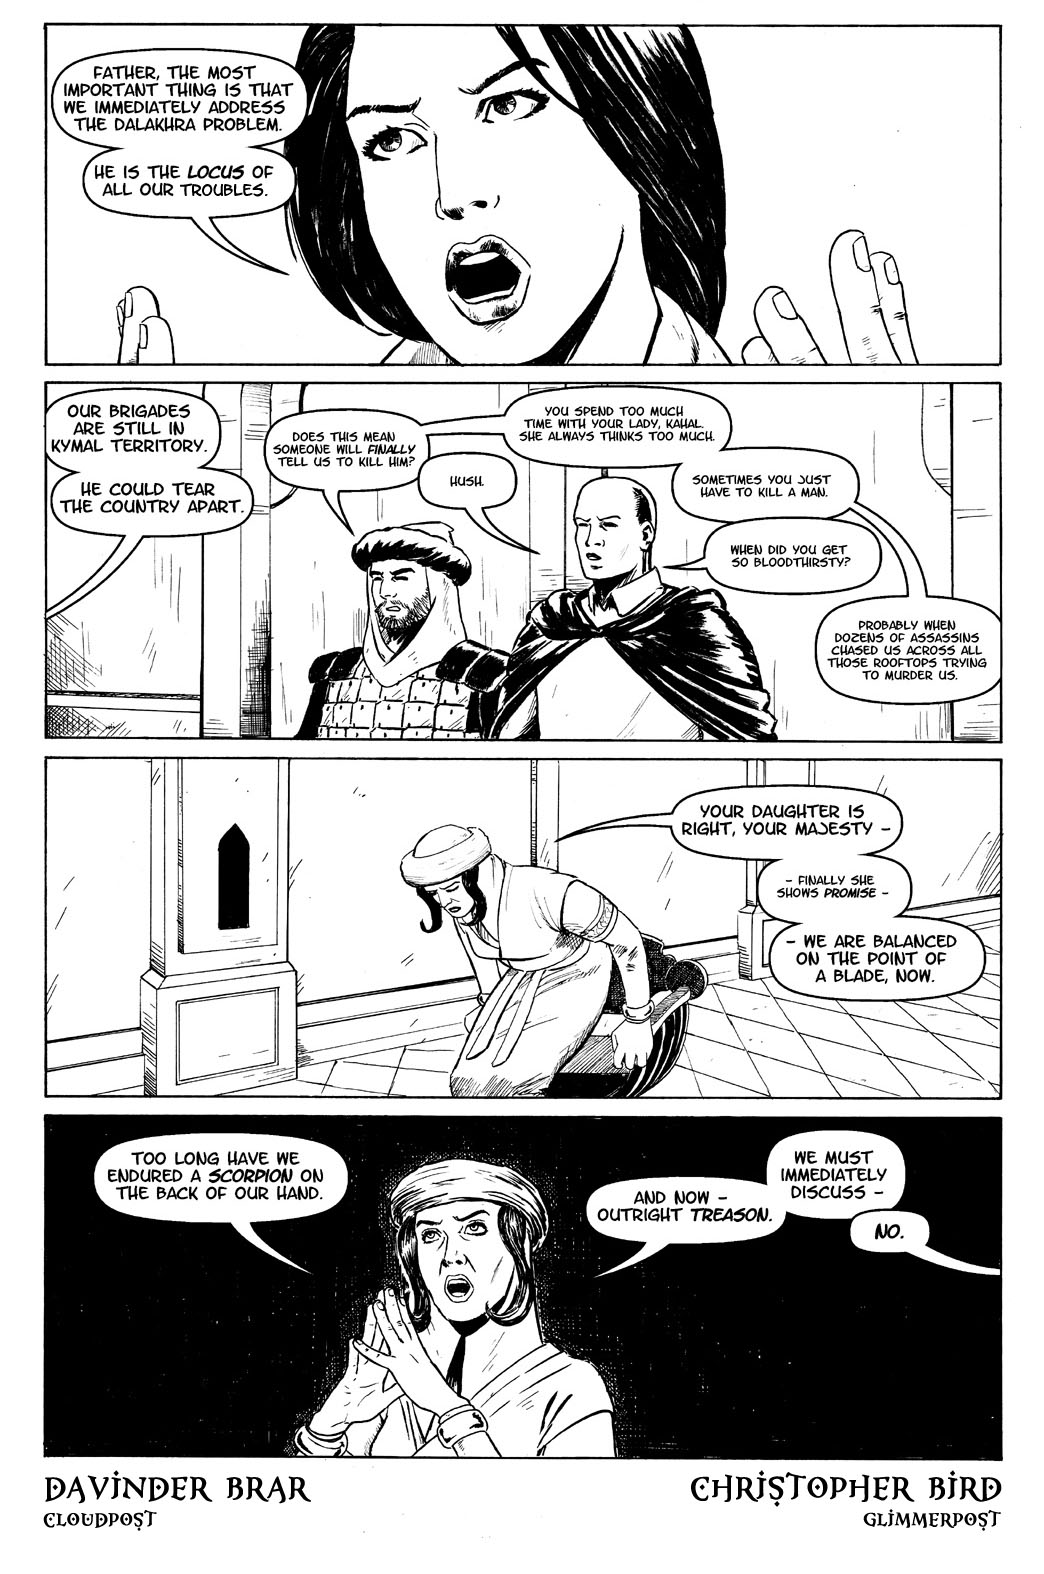 Book Six, Page One